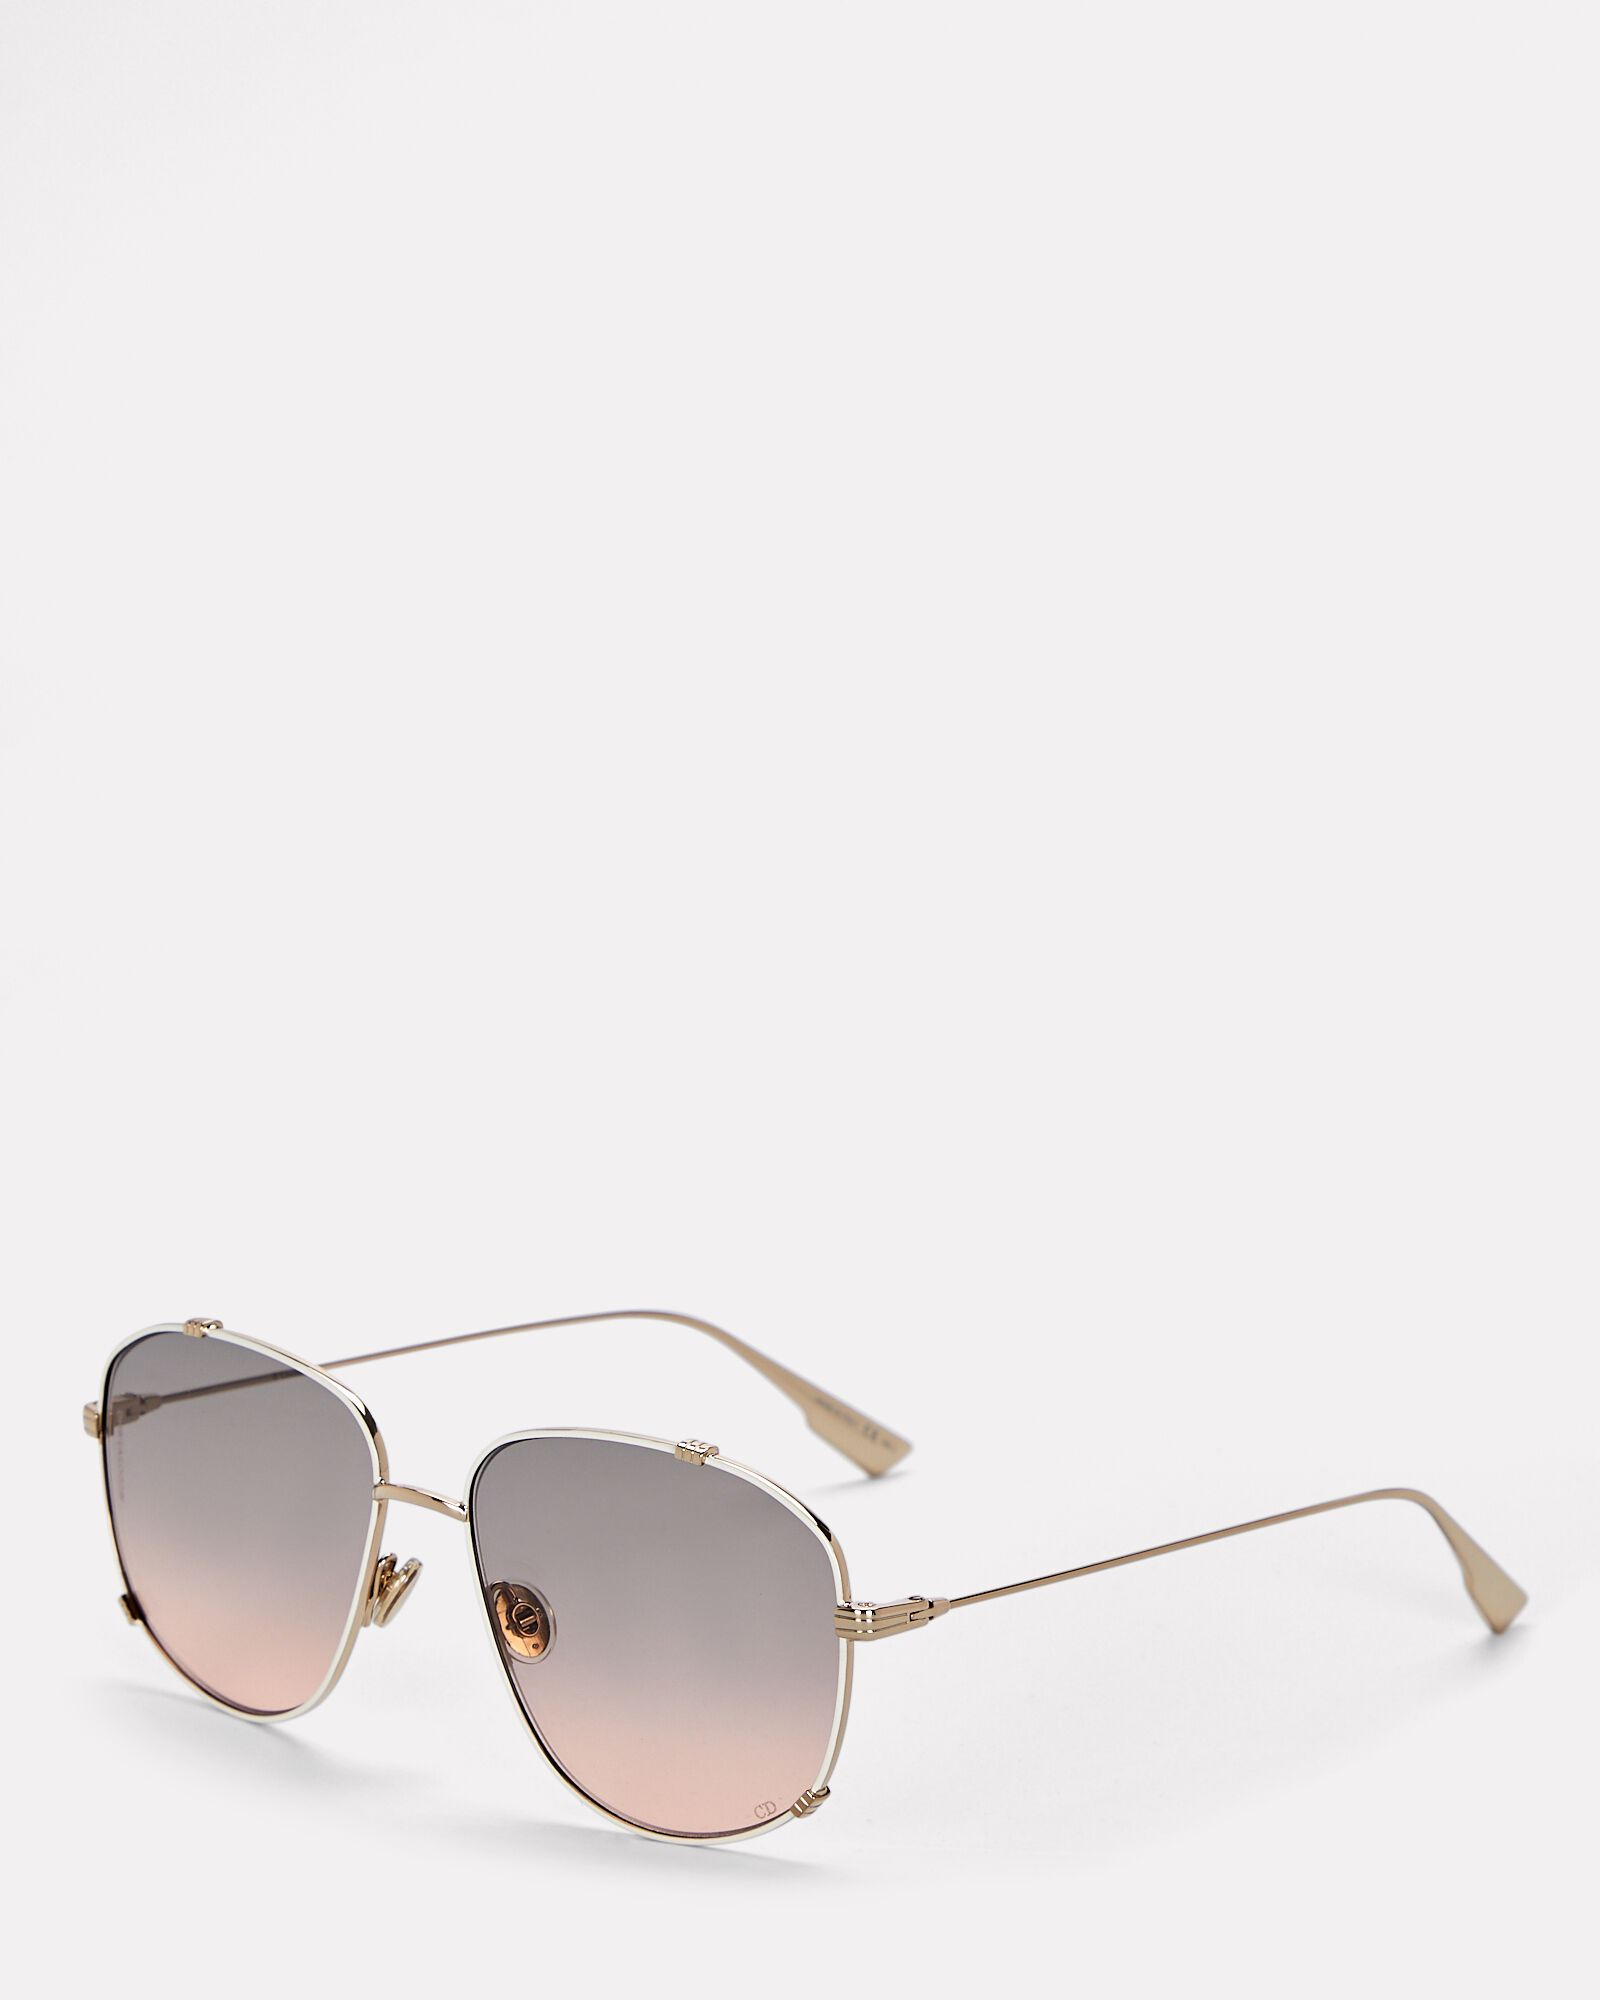 DiorMonsieur1 Aviator Sunglasses, MULTI, hi-res